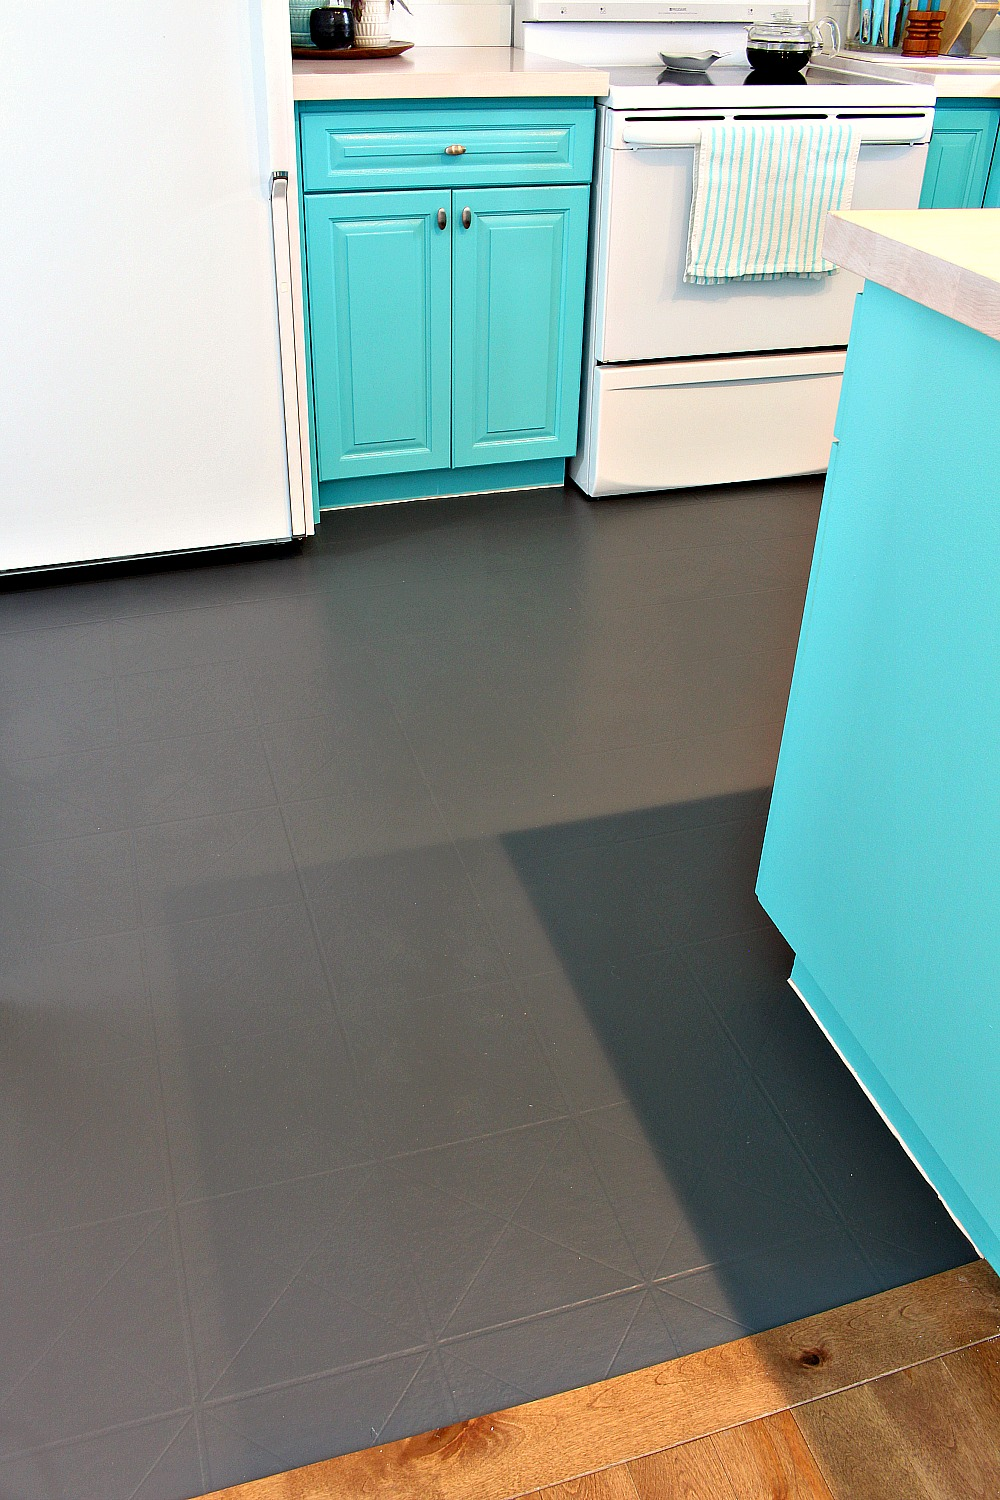 How To Paint A Vinyl Floor Diy Painted Floors Dans Le